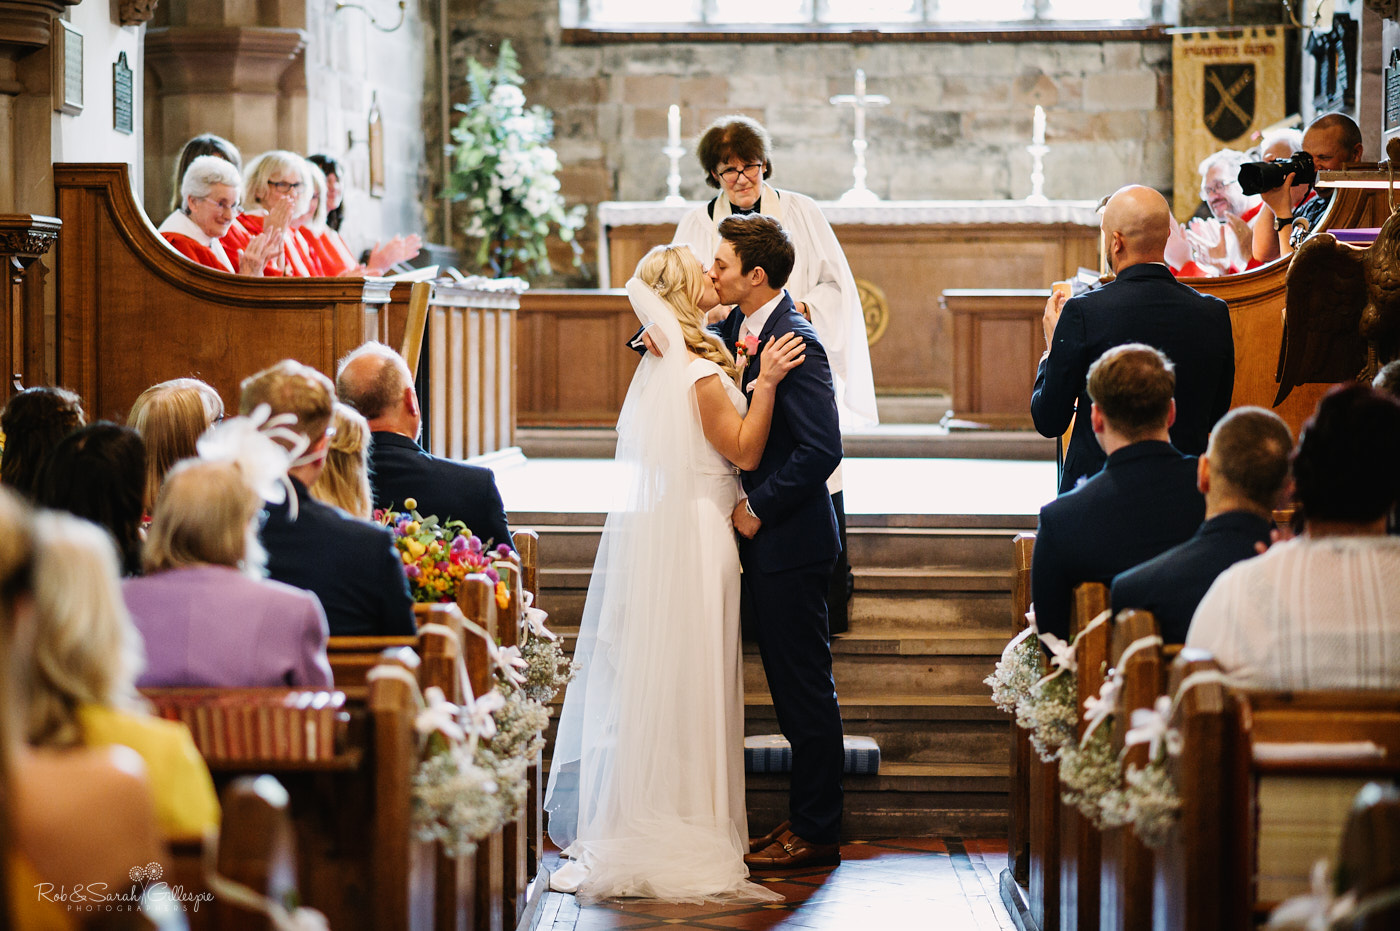 Bride and groom kiss during wedding ceremony in St Leonard's church Clent